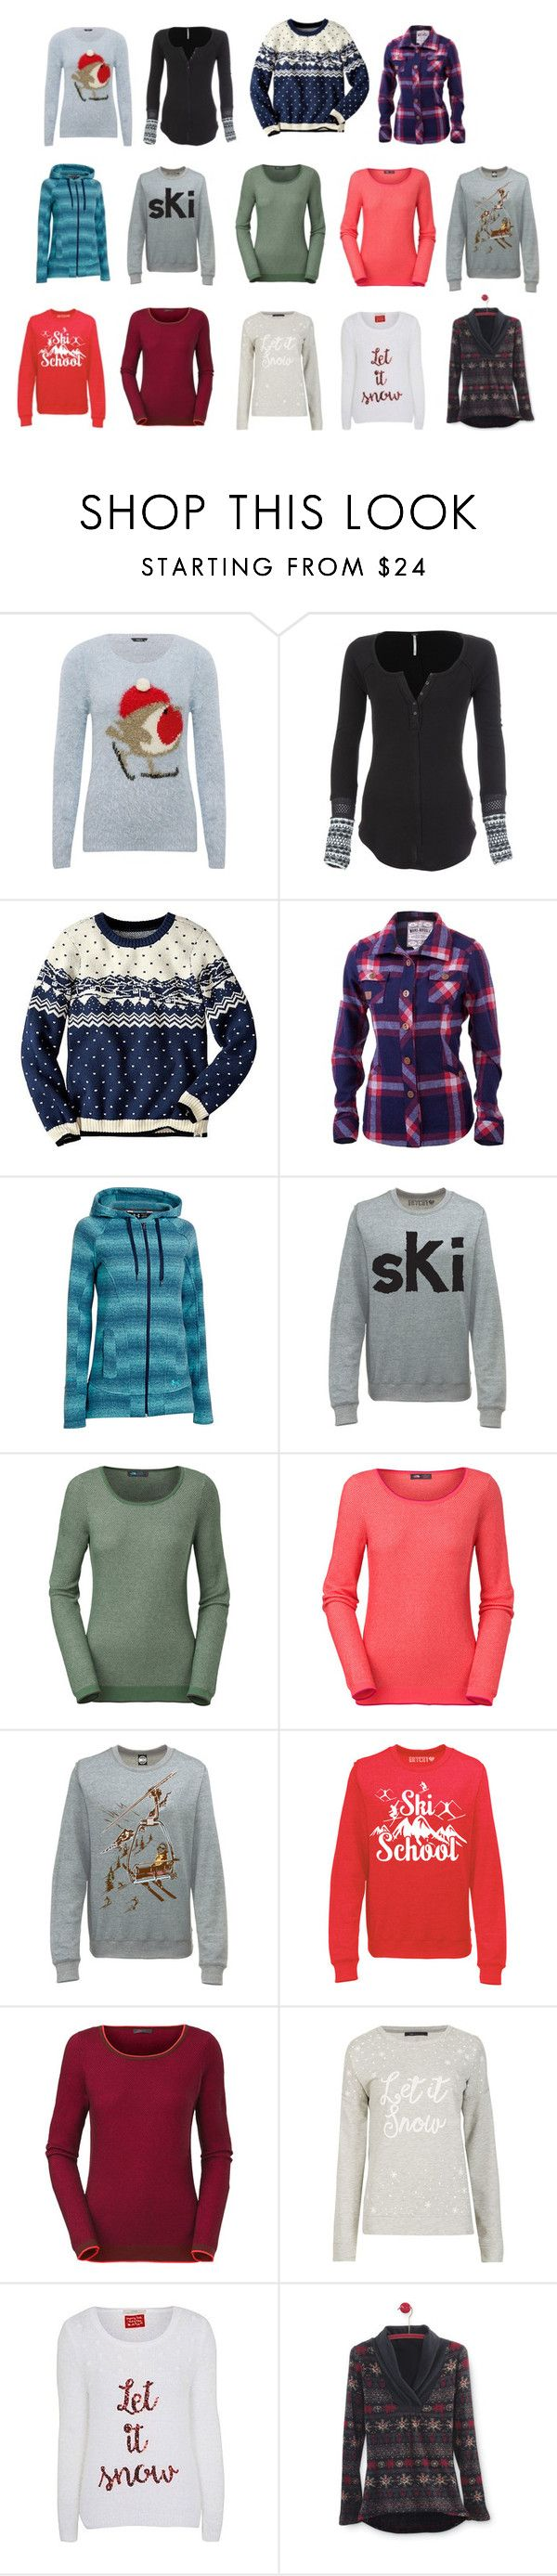 """""""Dream Closet-Ski 1 (tops)"""" by stephaniefb ❤ liked on Polyvore featuring moda, M&Co, Free People, Mons Royale, Under Armour, The North Face, snow, ski, winteressentials y plus size clothing"""